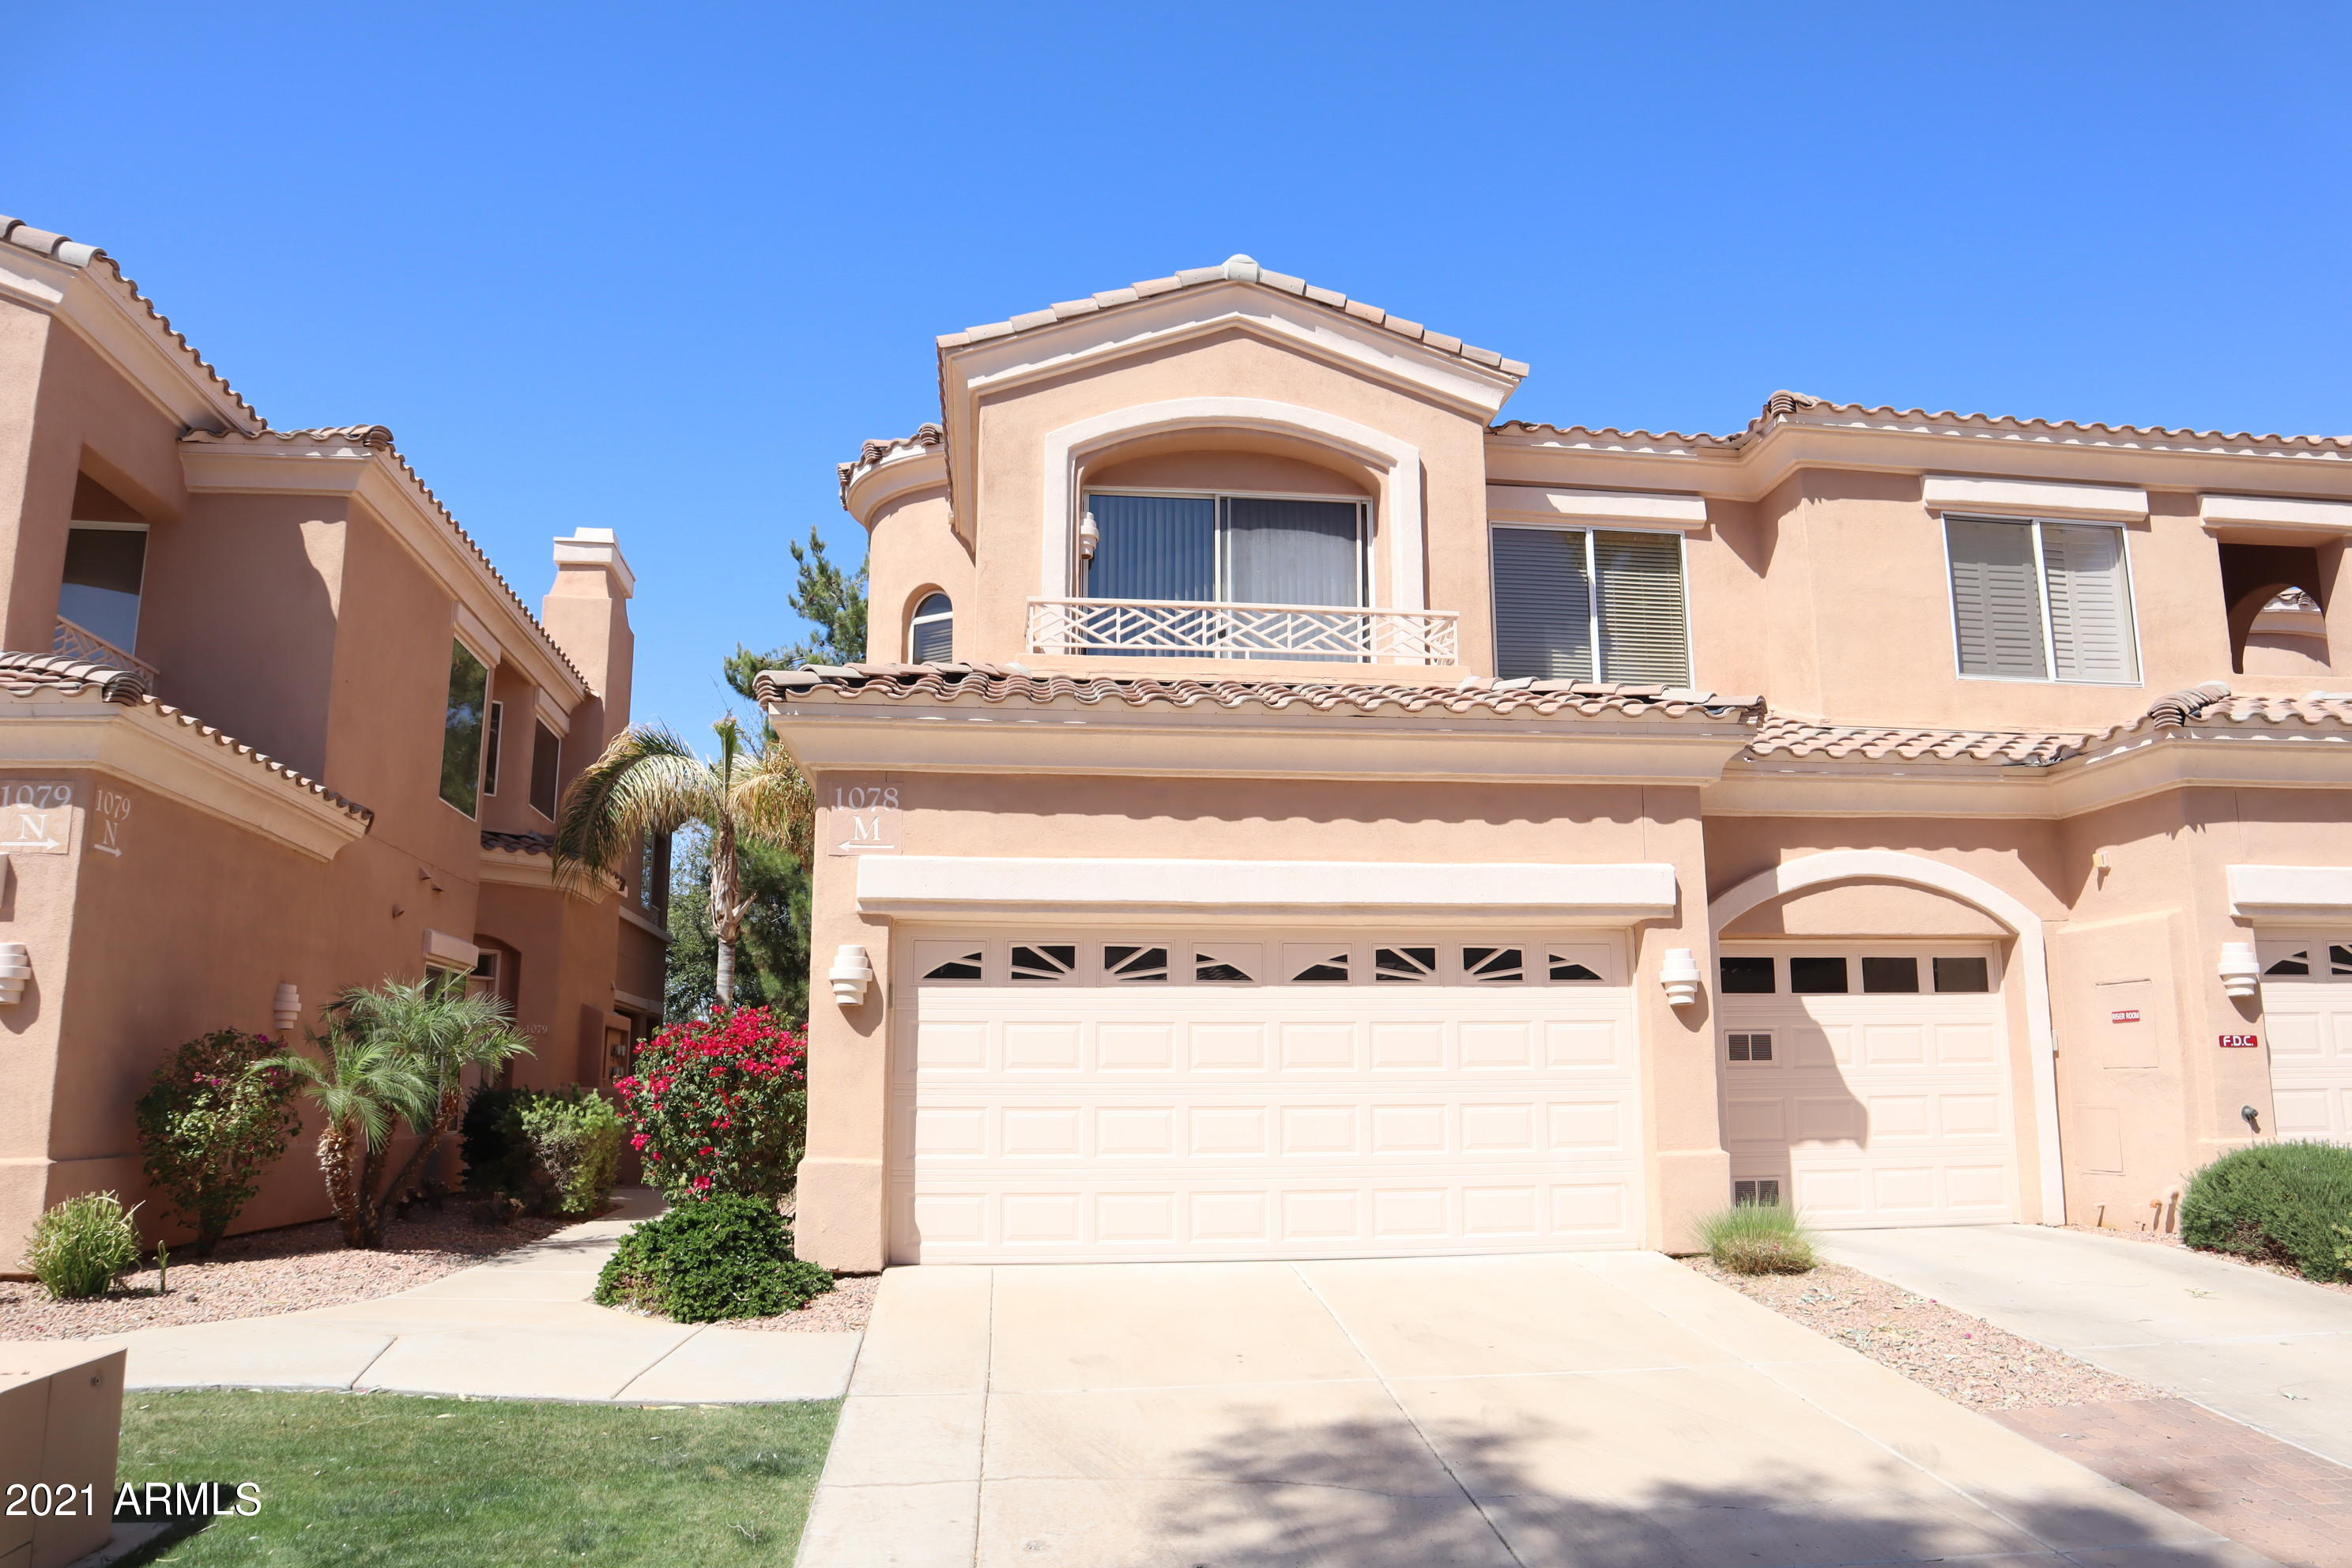 3800 S CANTABRIA Circle # 1078, Chandler, AZ 85248, 3 Bedrooms Bedrooms, ,Residential Lease,For Rent,3800 S CANTABRIA Circle # 1078,6205789